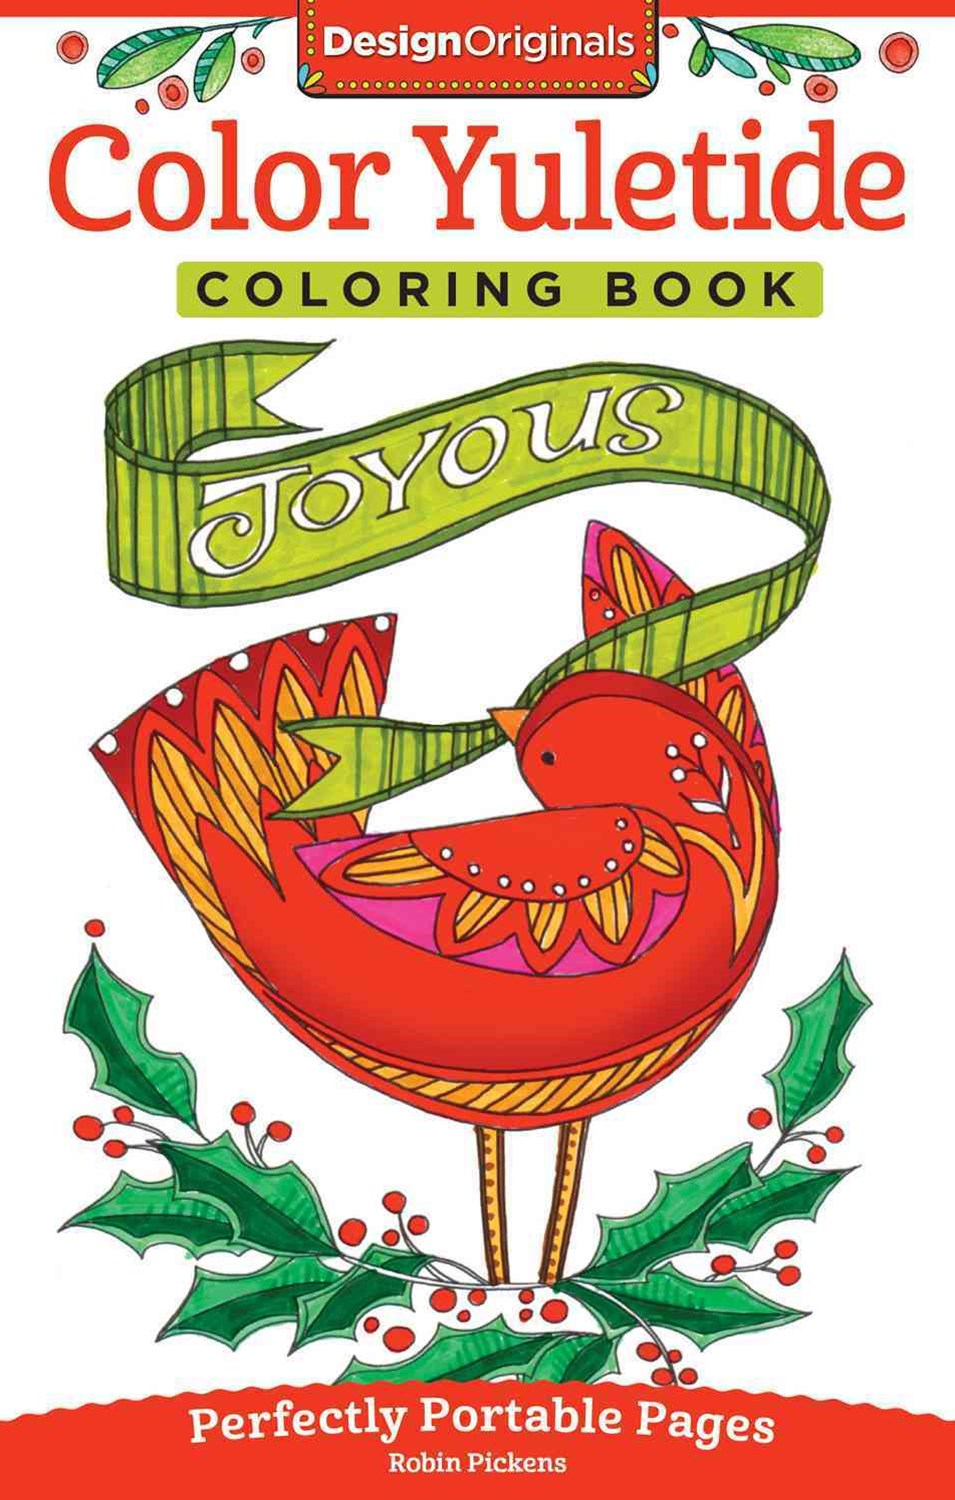 Color Yuletide Coloring Book